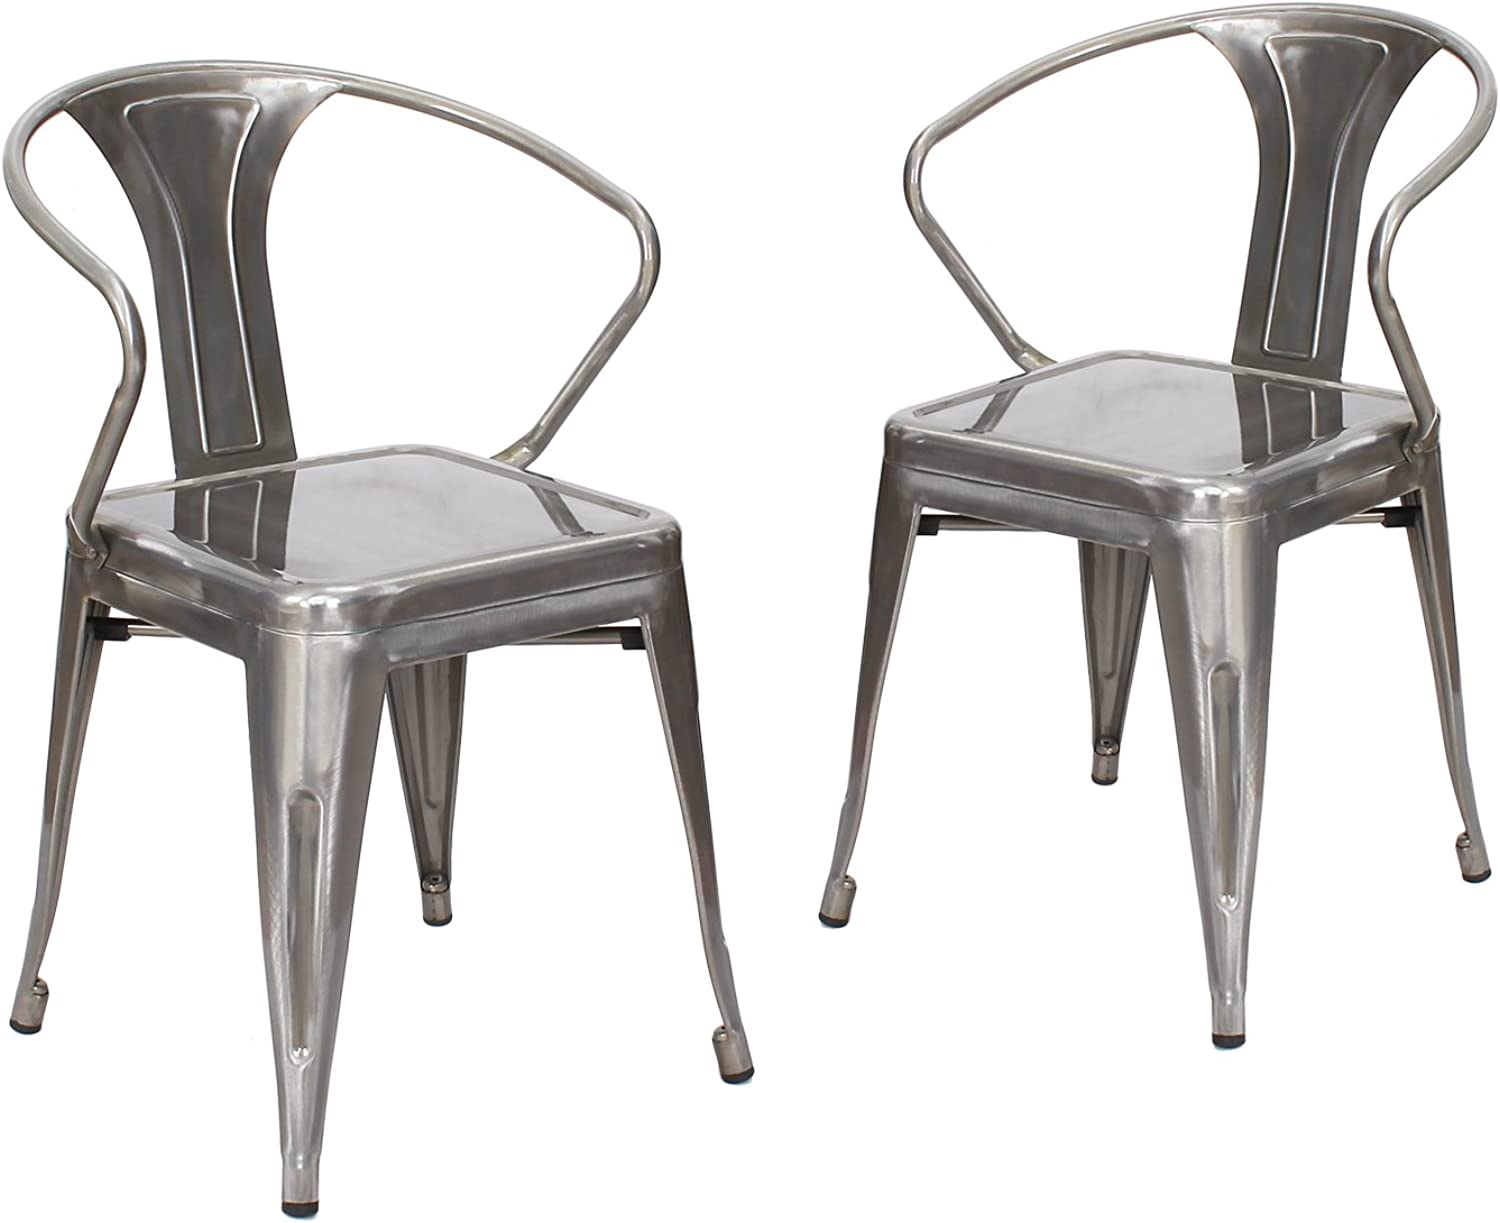 Adeco CH0219-2 Metal Stackable Curve Armrest Chair